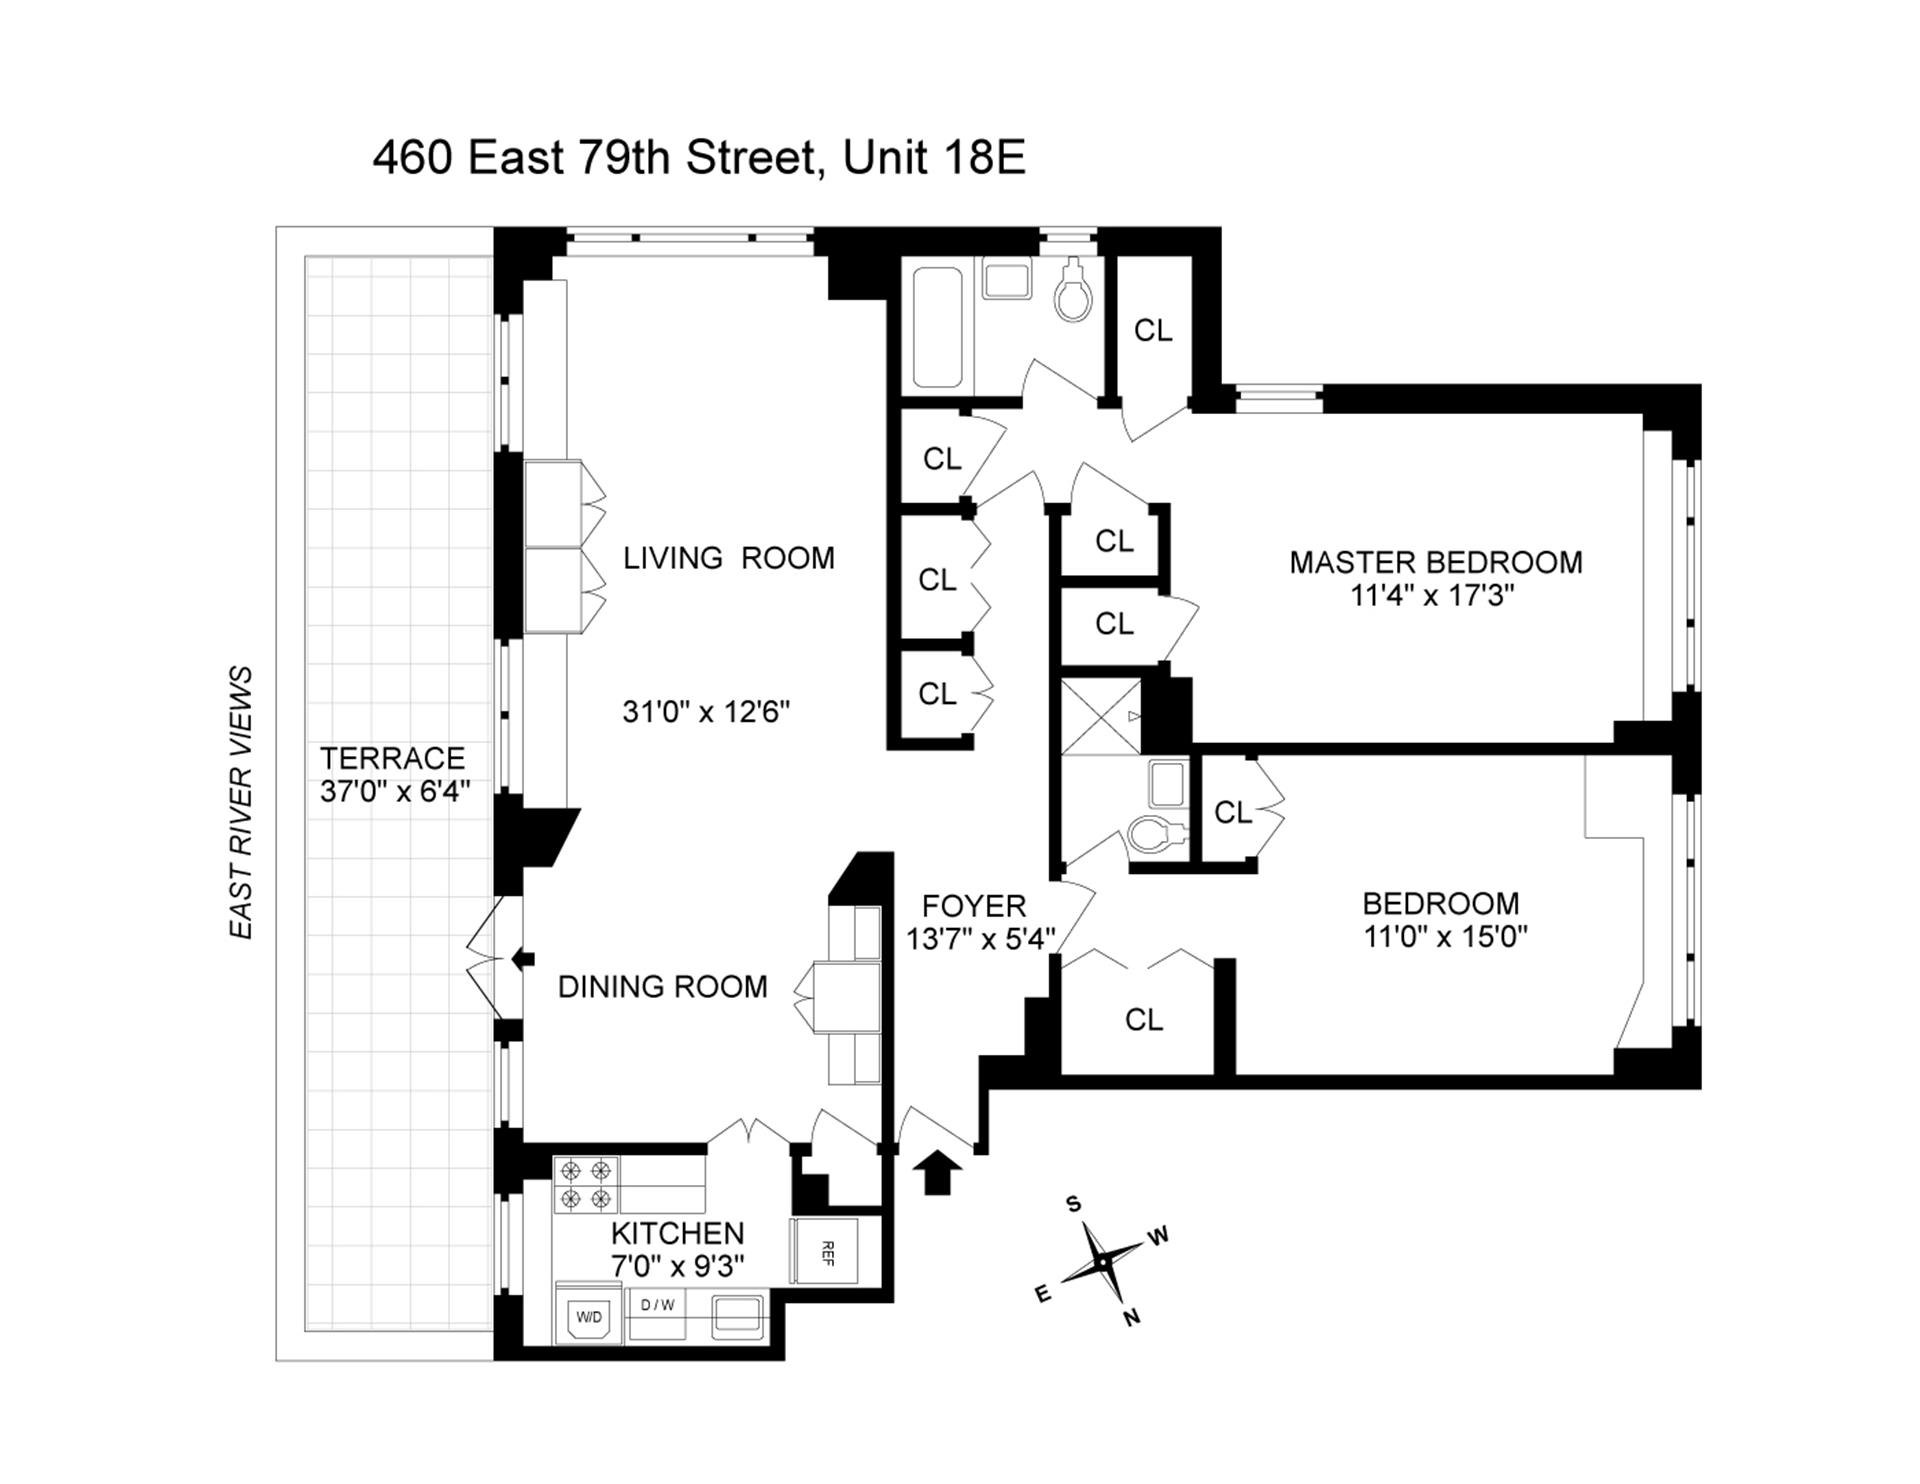 Floor plan of GREGORY TOWERS, 460 East 79th Street, 18E - Upper East Side, New York